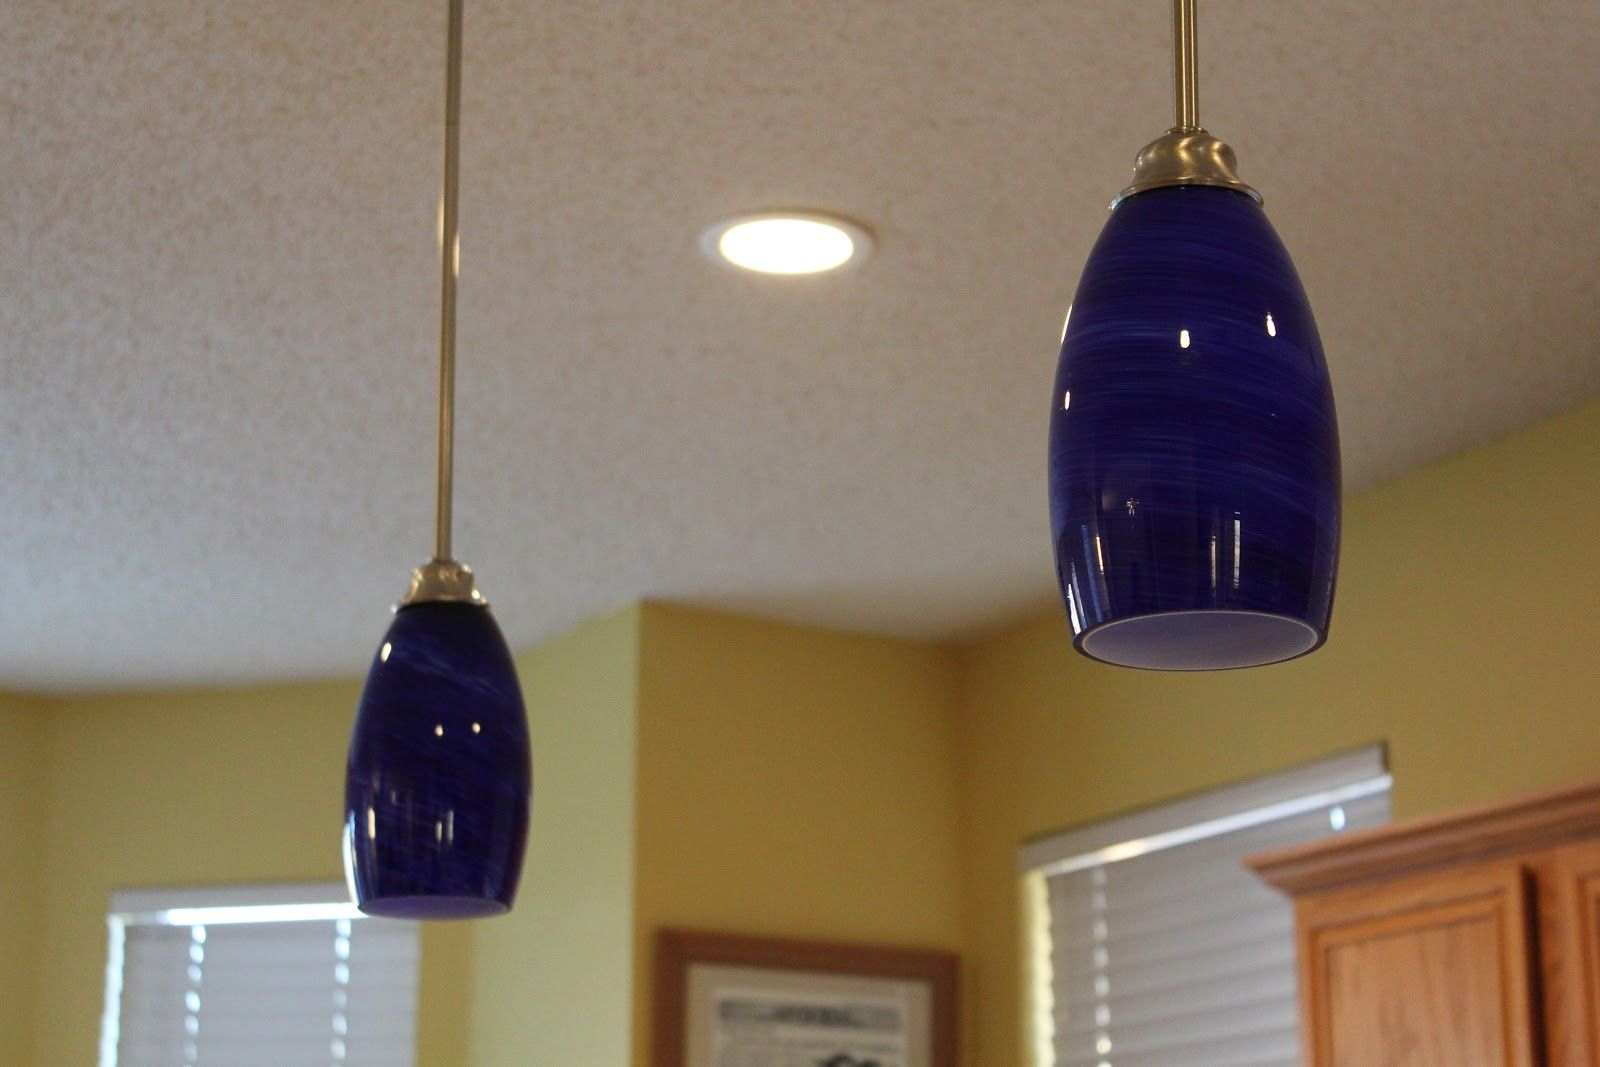 Kitchen these cobalt blue glass lampshades are perfect against the